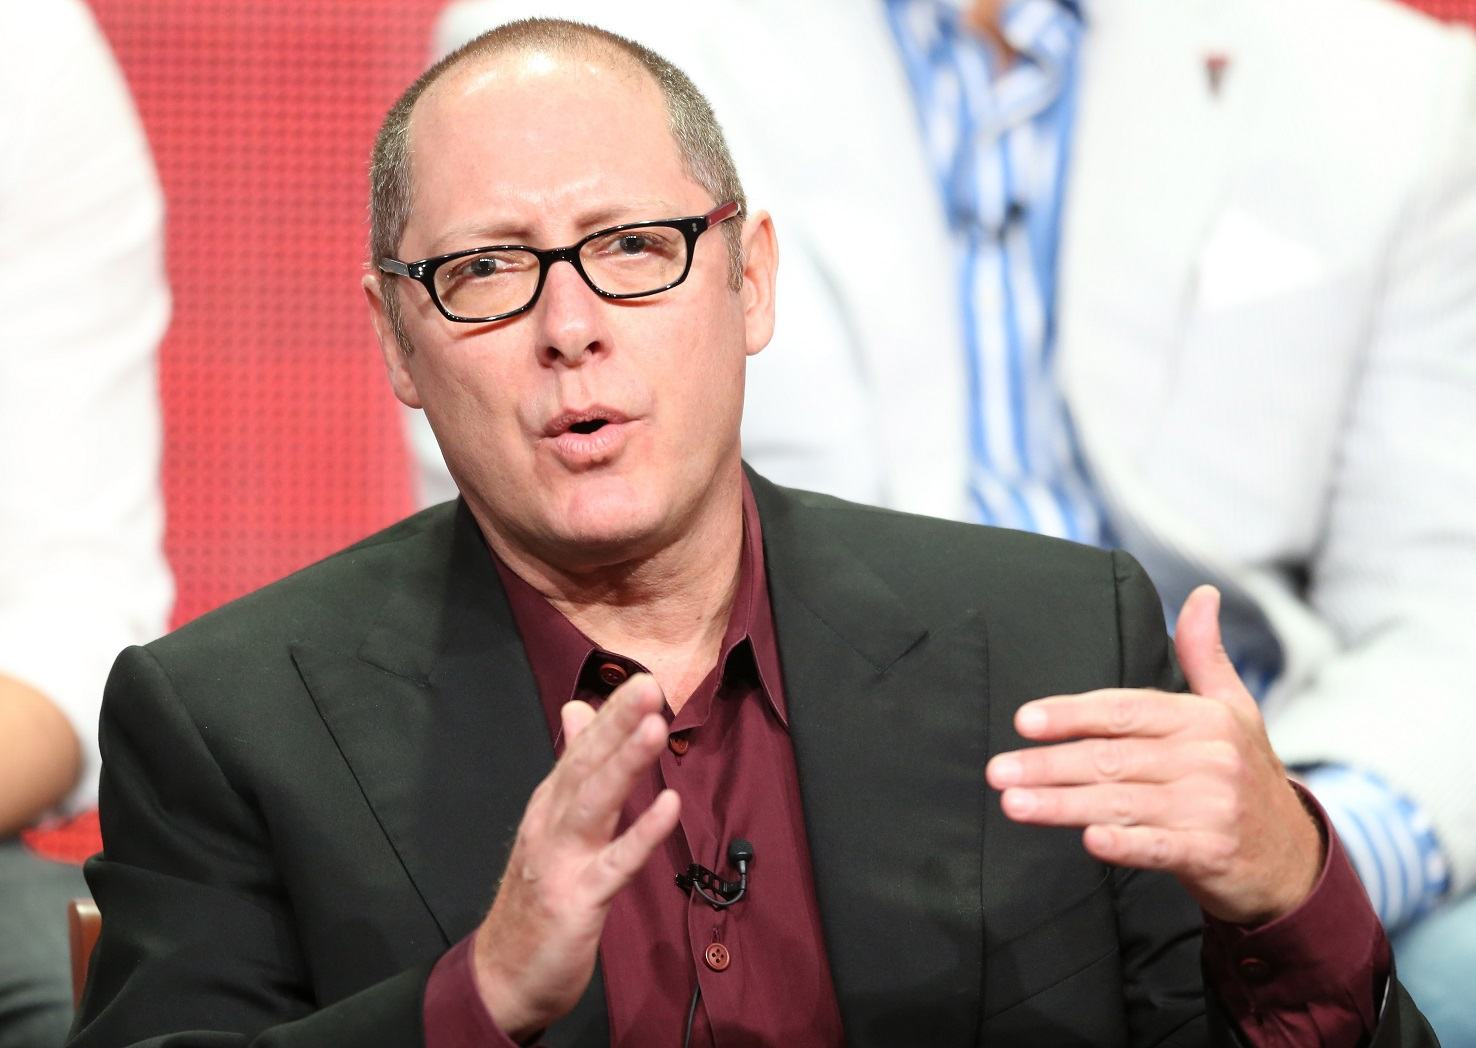 James Spader has a substantial net worth that could grow larger thanks to his producer title on 'The Blacklist.'